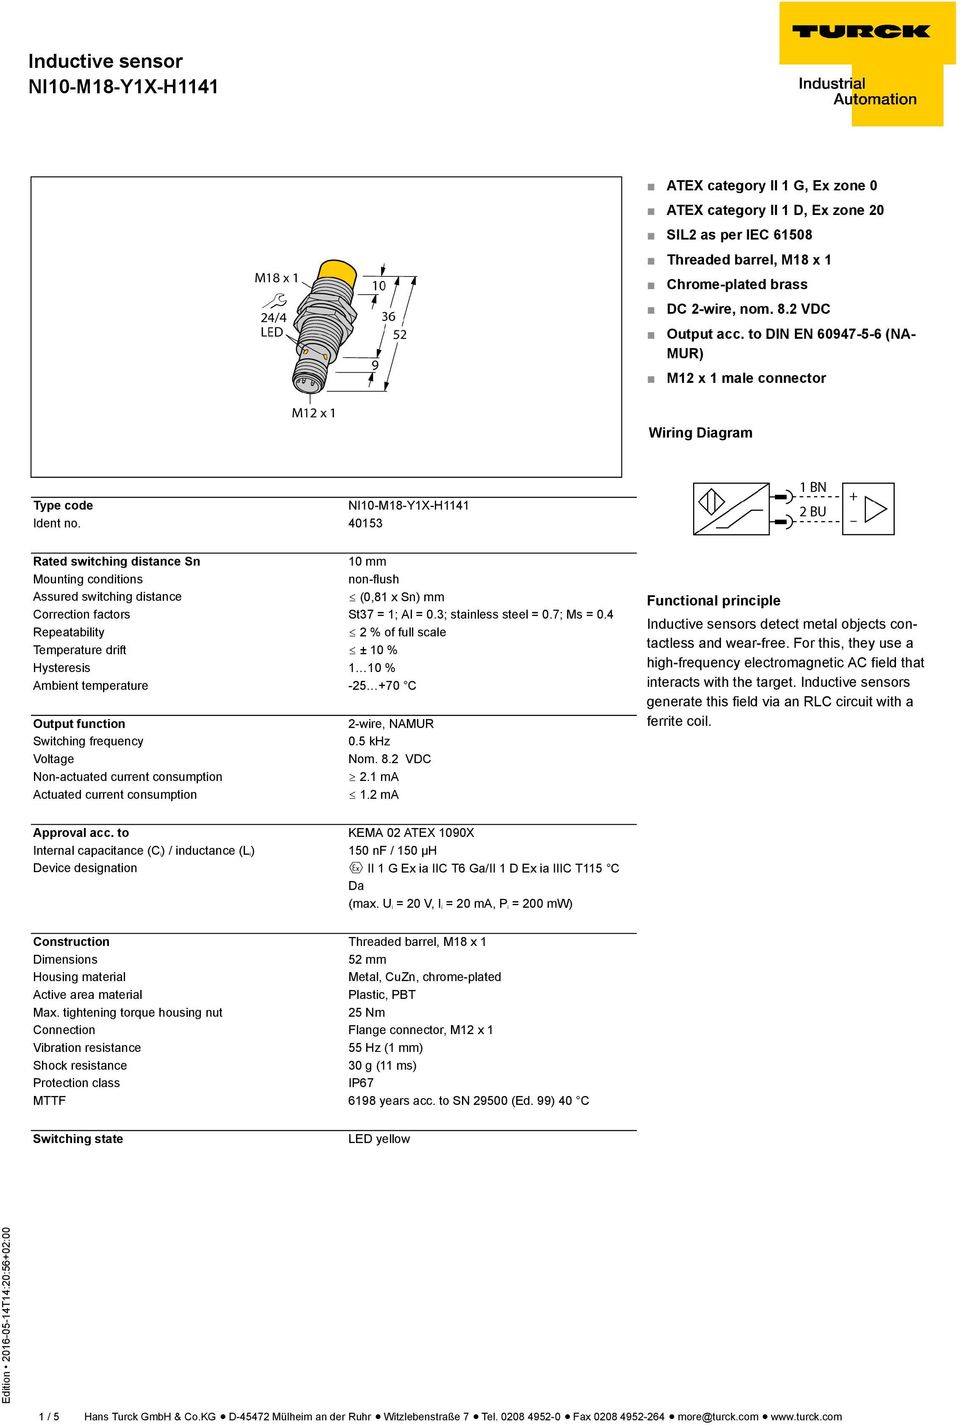 Inductive Sensor Ni10 M18 Y1x H Pdf Turck Npn Wiring Diagram 40153 Rated Switching Distance Sn 10 Mm Mounting Conditions Non Flush Assured